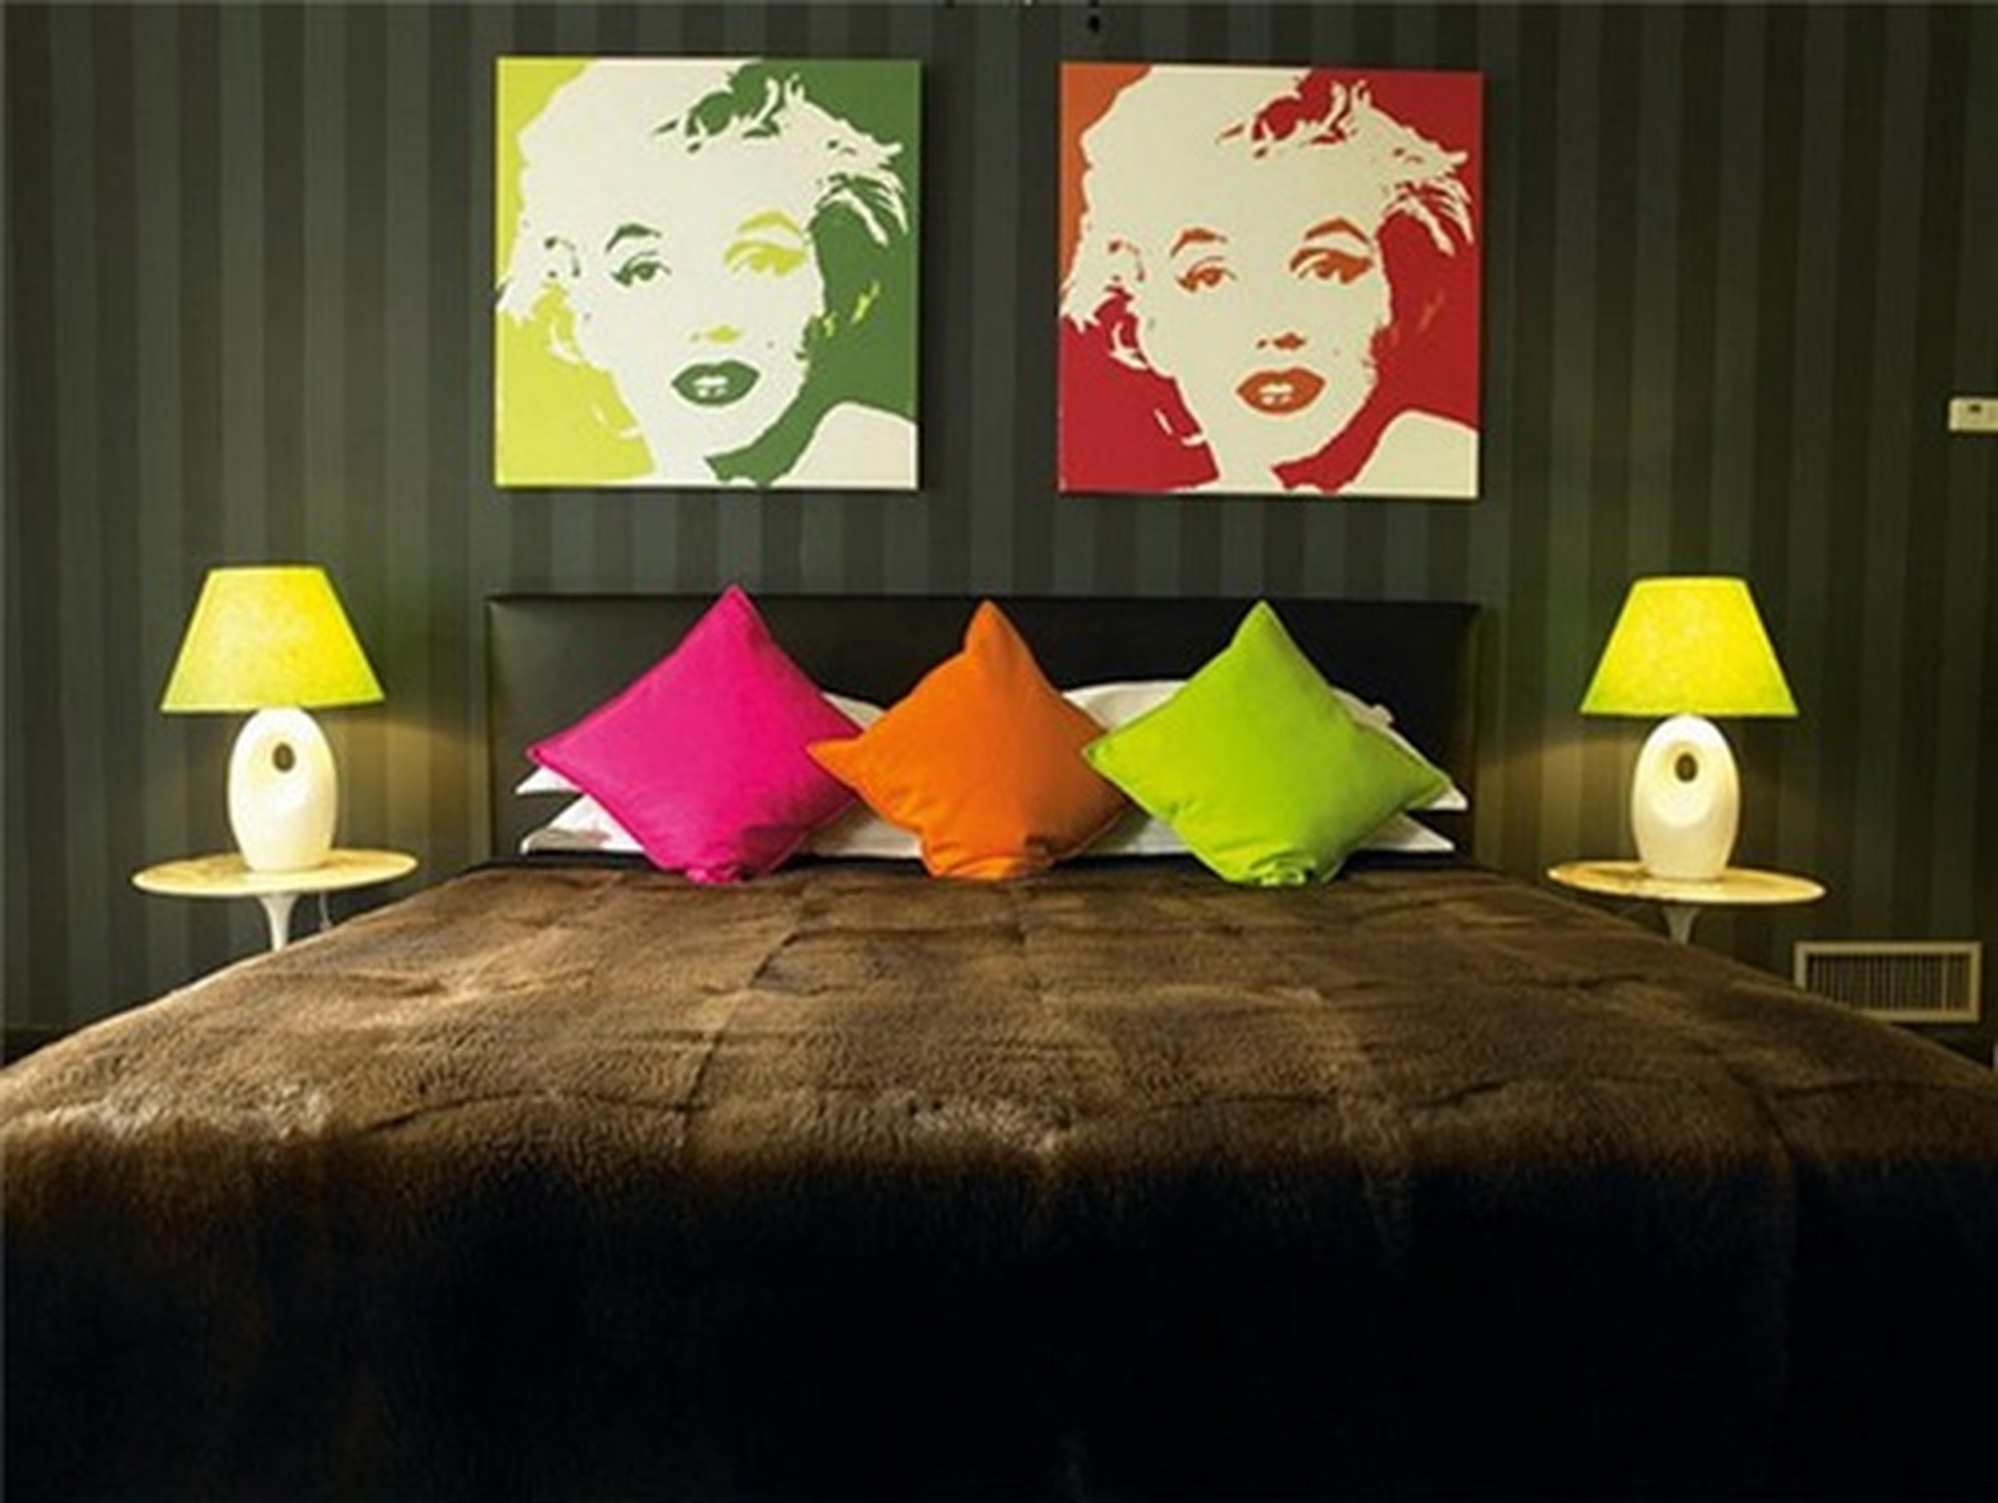 18 chic interior designs inspired by pop art for Interior pop designs for bedroom